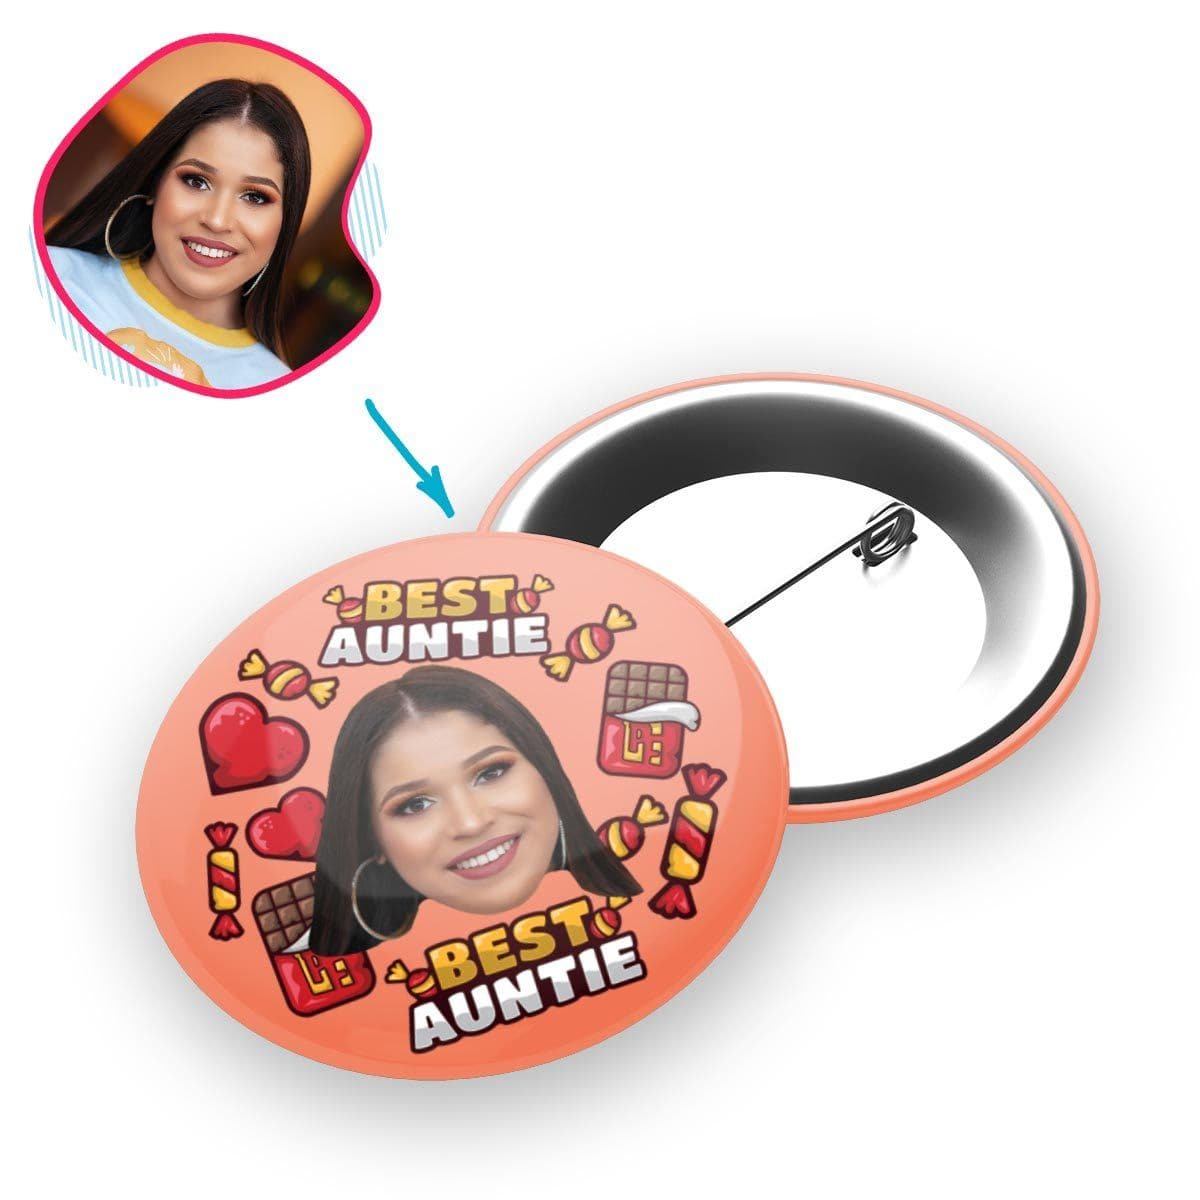 Salmon Auntie personalized pin with photo of face printed on it